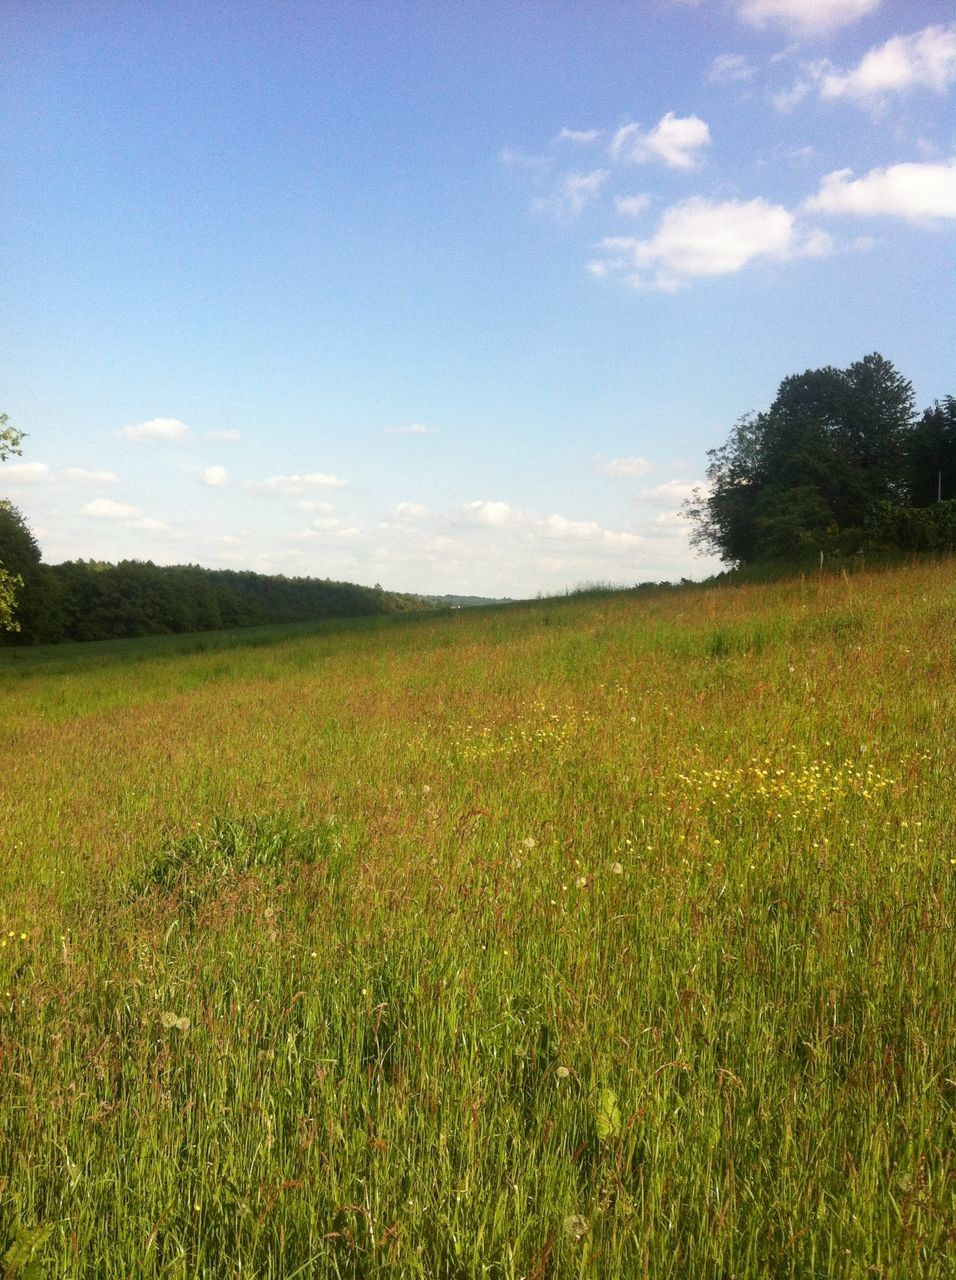 grass, field, landscape, nature, meadow, growth, summer, sky, no people, blue sky, beauty in nature, outdoors, tree, day